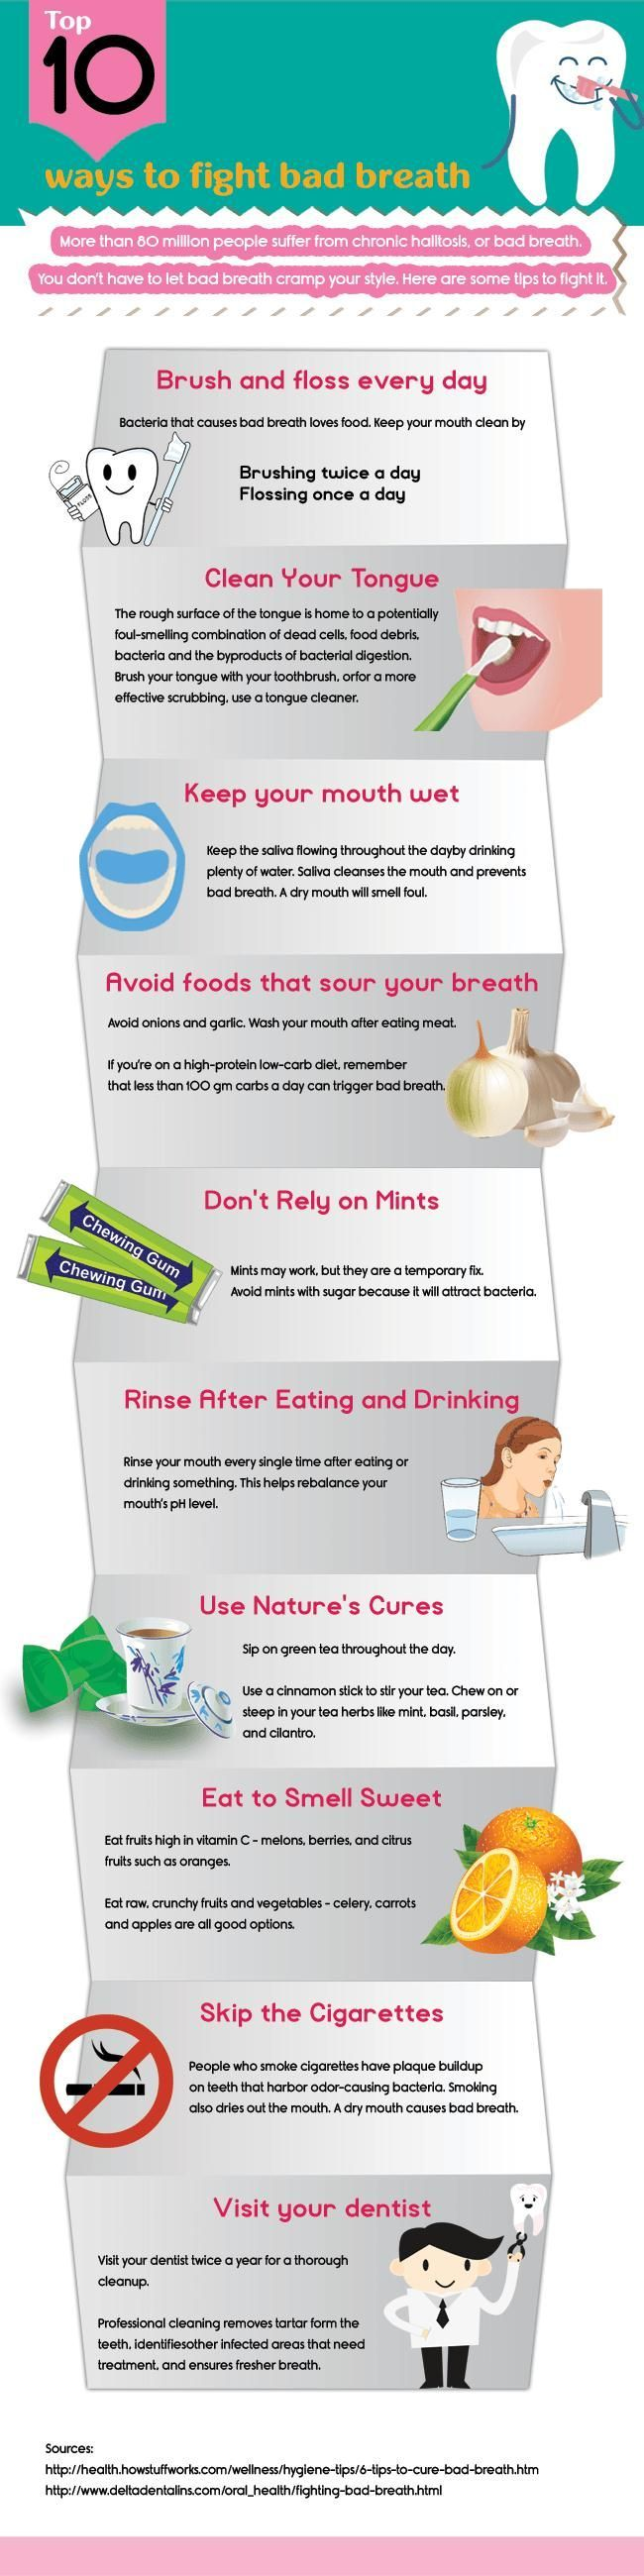 Want to stay forever young? Weve got some amazing anti aging skin care tips and hacks designed to prevent wrinkles and look younger. Whether youre over 40 or over 50 or even just in your 20s and 30s* these natural remedies and skin care diet ideas offer some of the best beauty hacks around.  Be ca